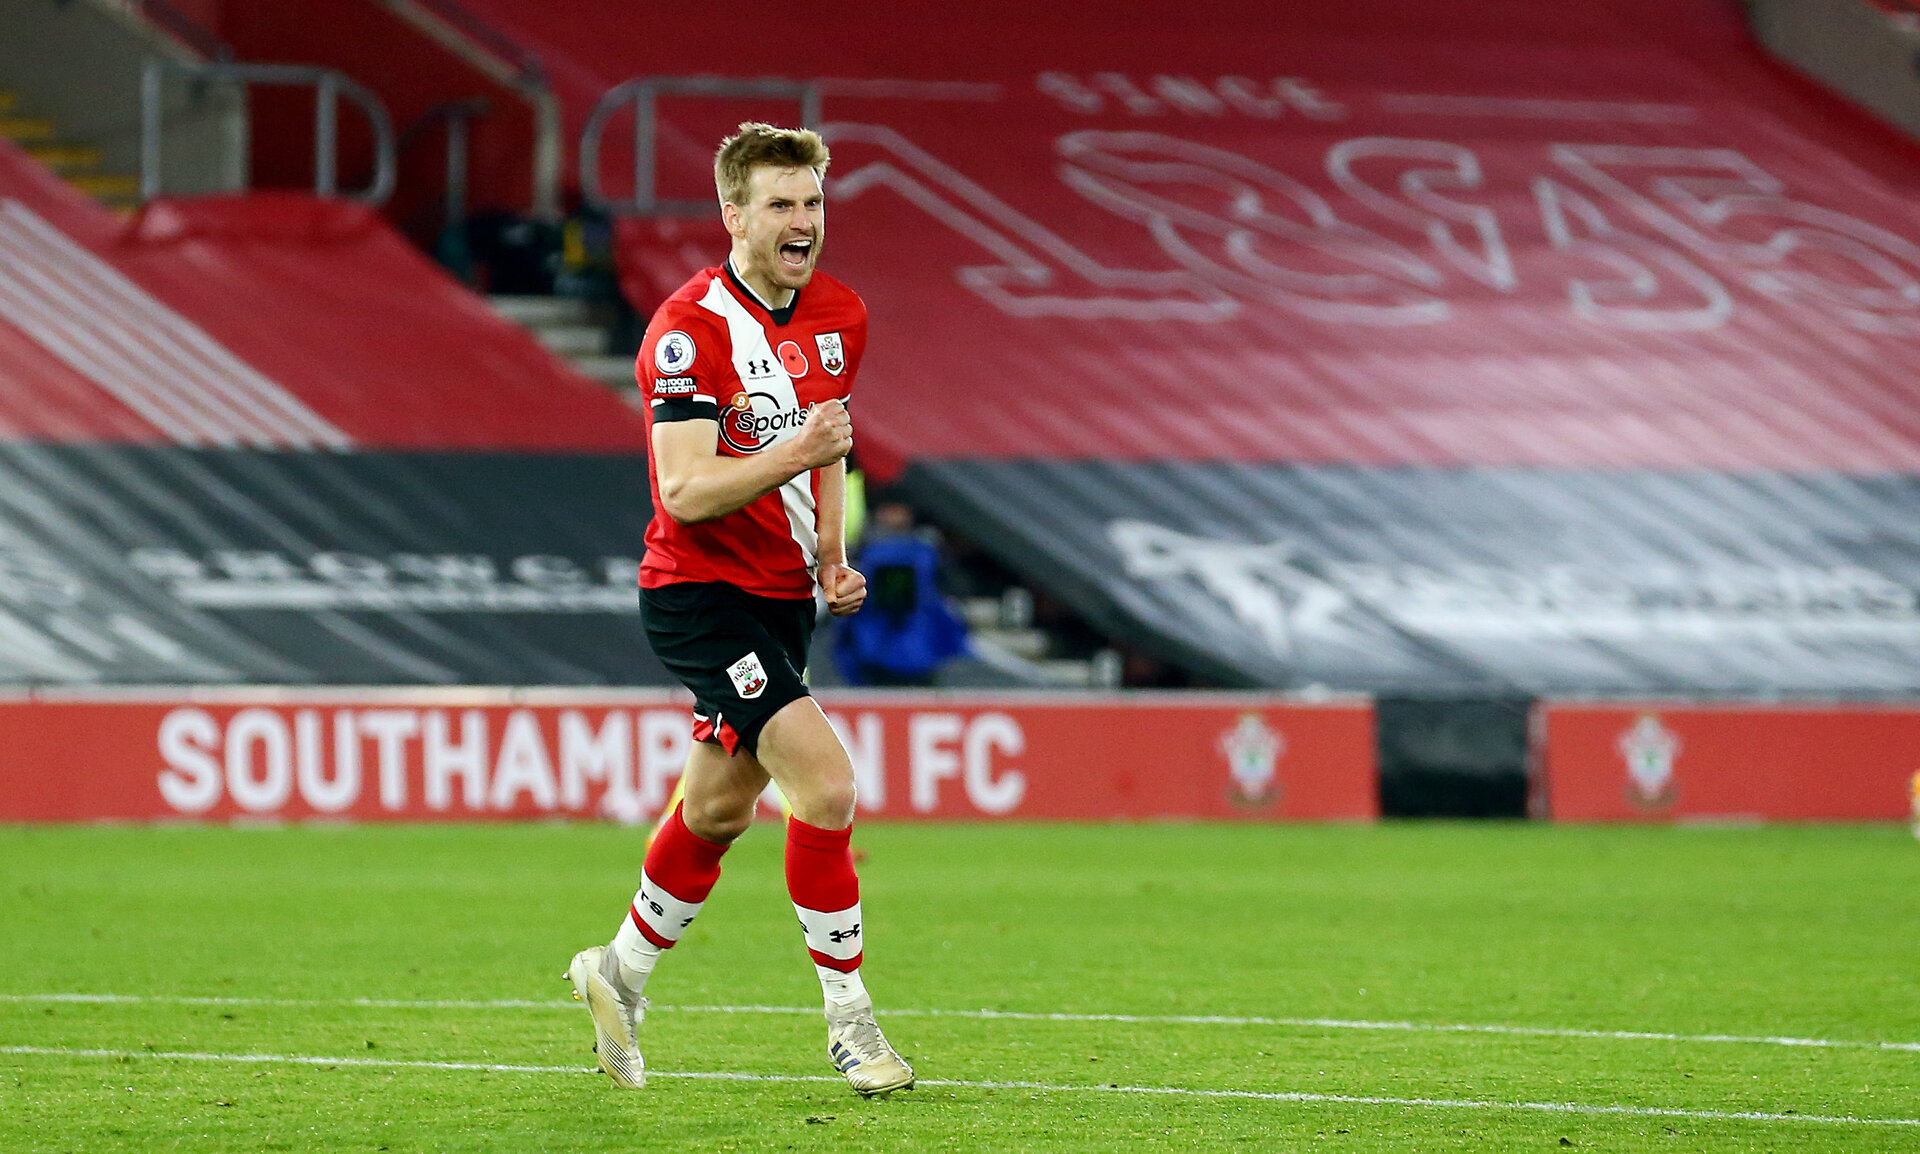 SOUTHAMPTON, ENGLAND - NOVEMBER 06: Stuart Armstrong of Southampton celebrates after making it 2-0 during the Premier League match between Southampton and Newcastle United at St Mary's Stadium on November 06, 2020 in Southampton, England. Sporting stadiums around the UK remain under strict restrictions due to the Coronavirus Pandemic as Government social distancing laws prohibit fans inside venues resulting in games being played behind closed doors. (Photo by Matt Watson/Southampton FC via Getty Images)